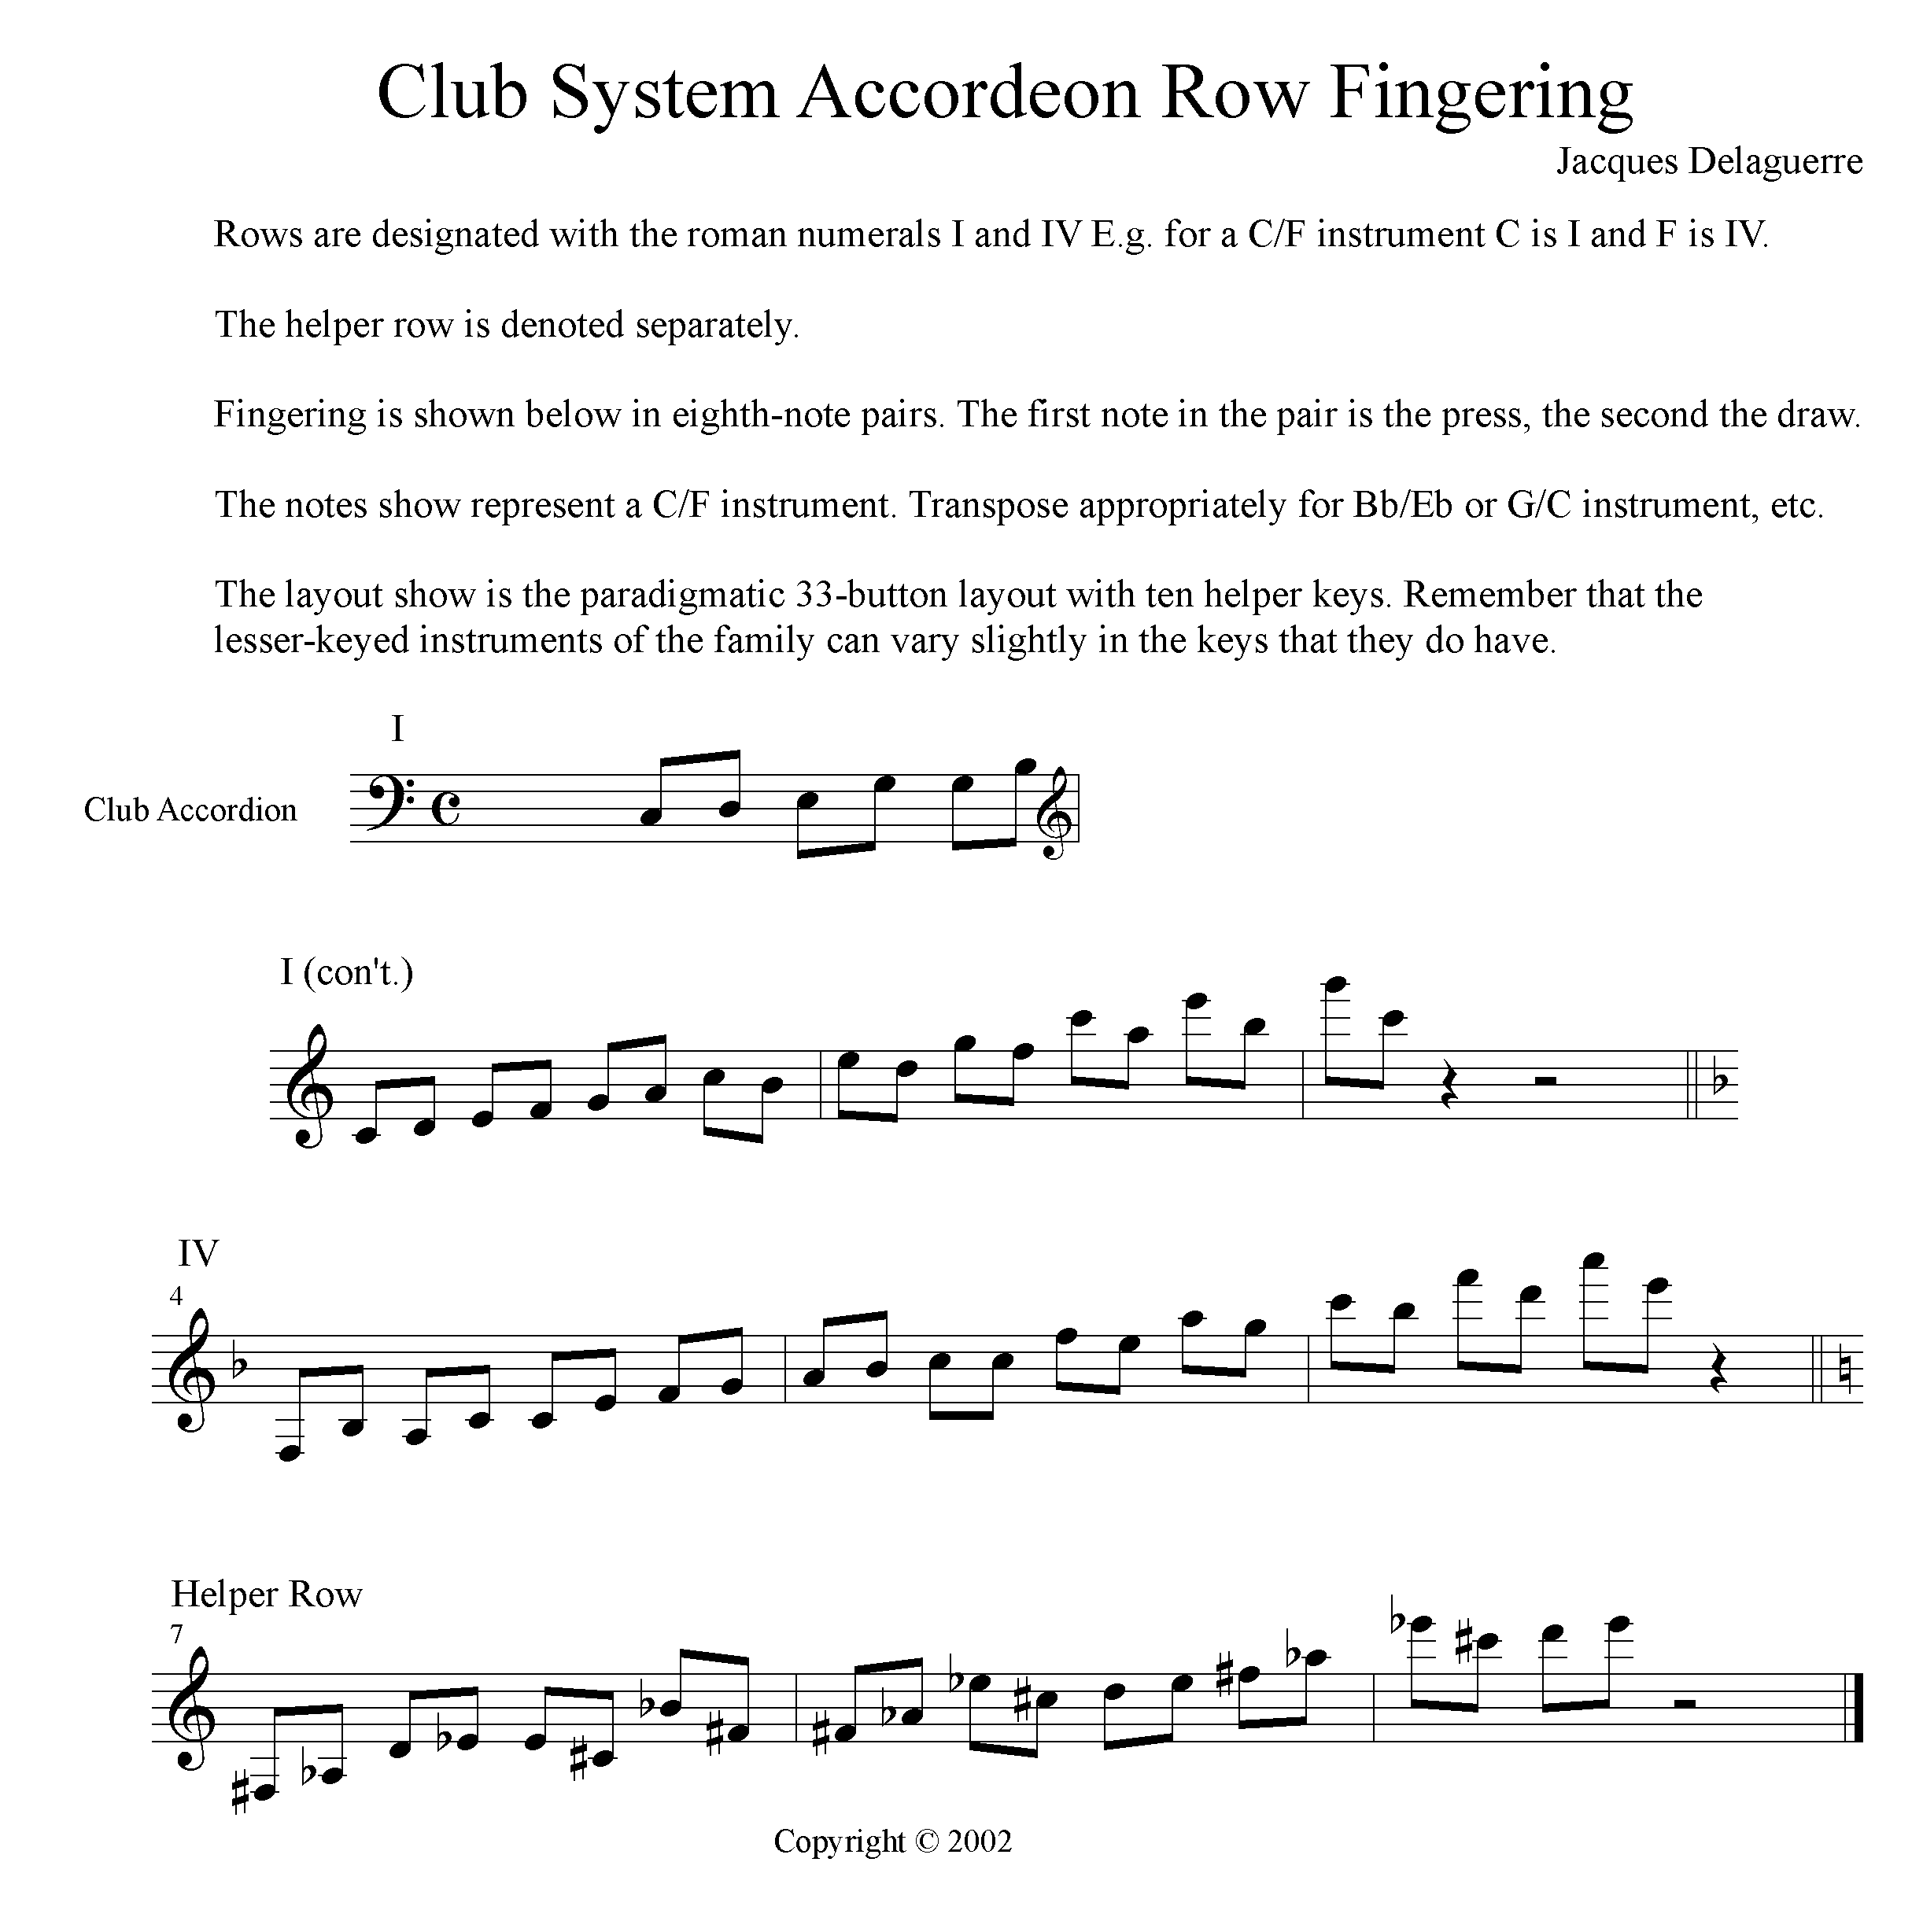 Musicians guide to the club system button accordion layout club fingering for cf instrument hexwebz Choice Image